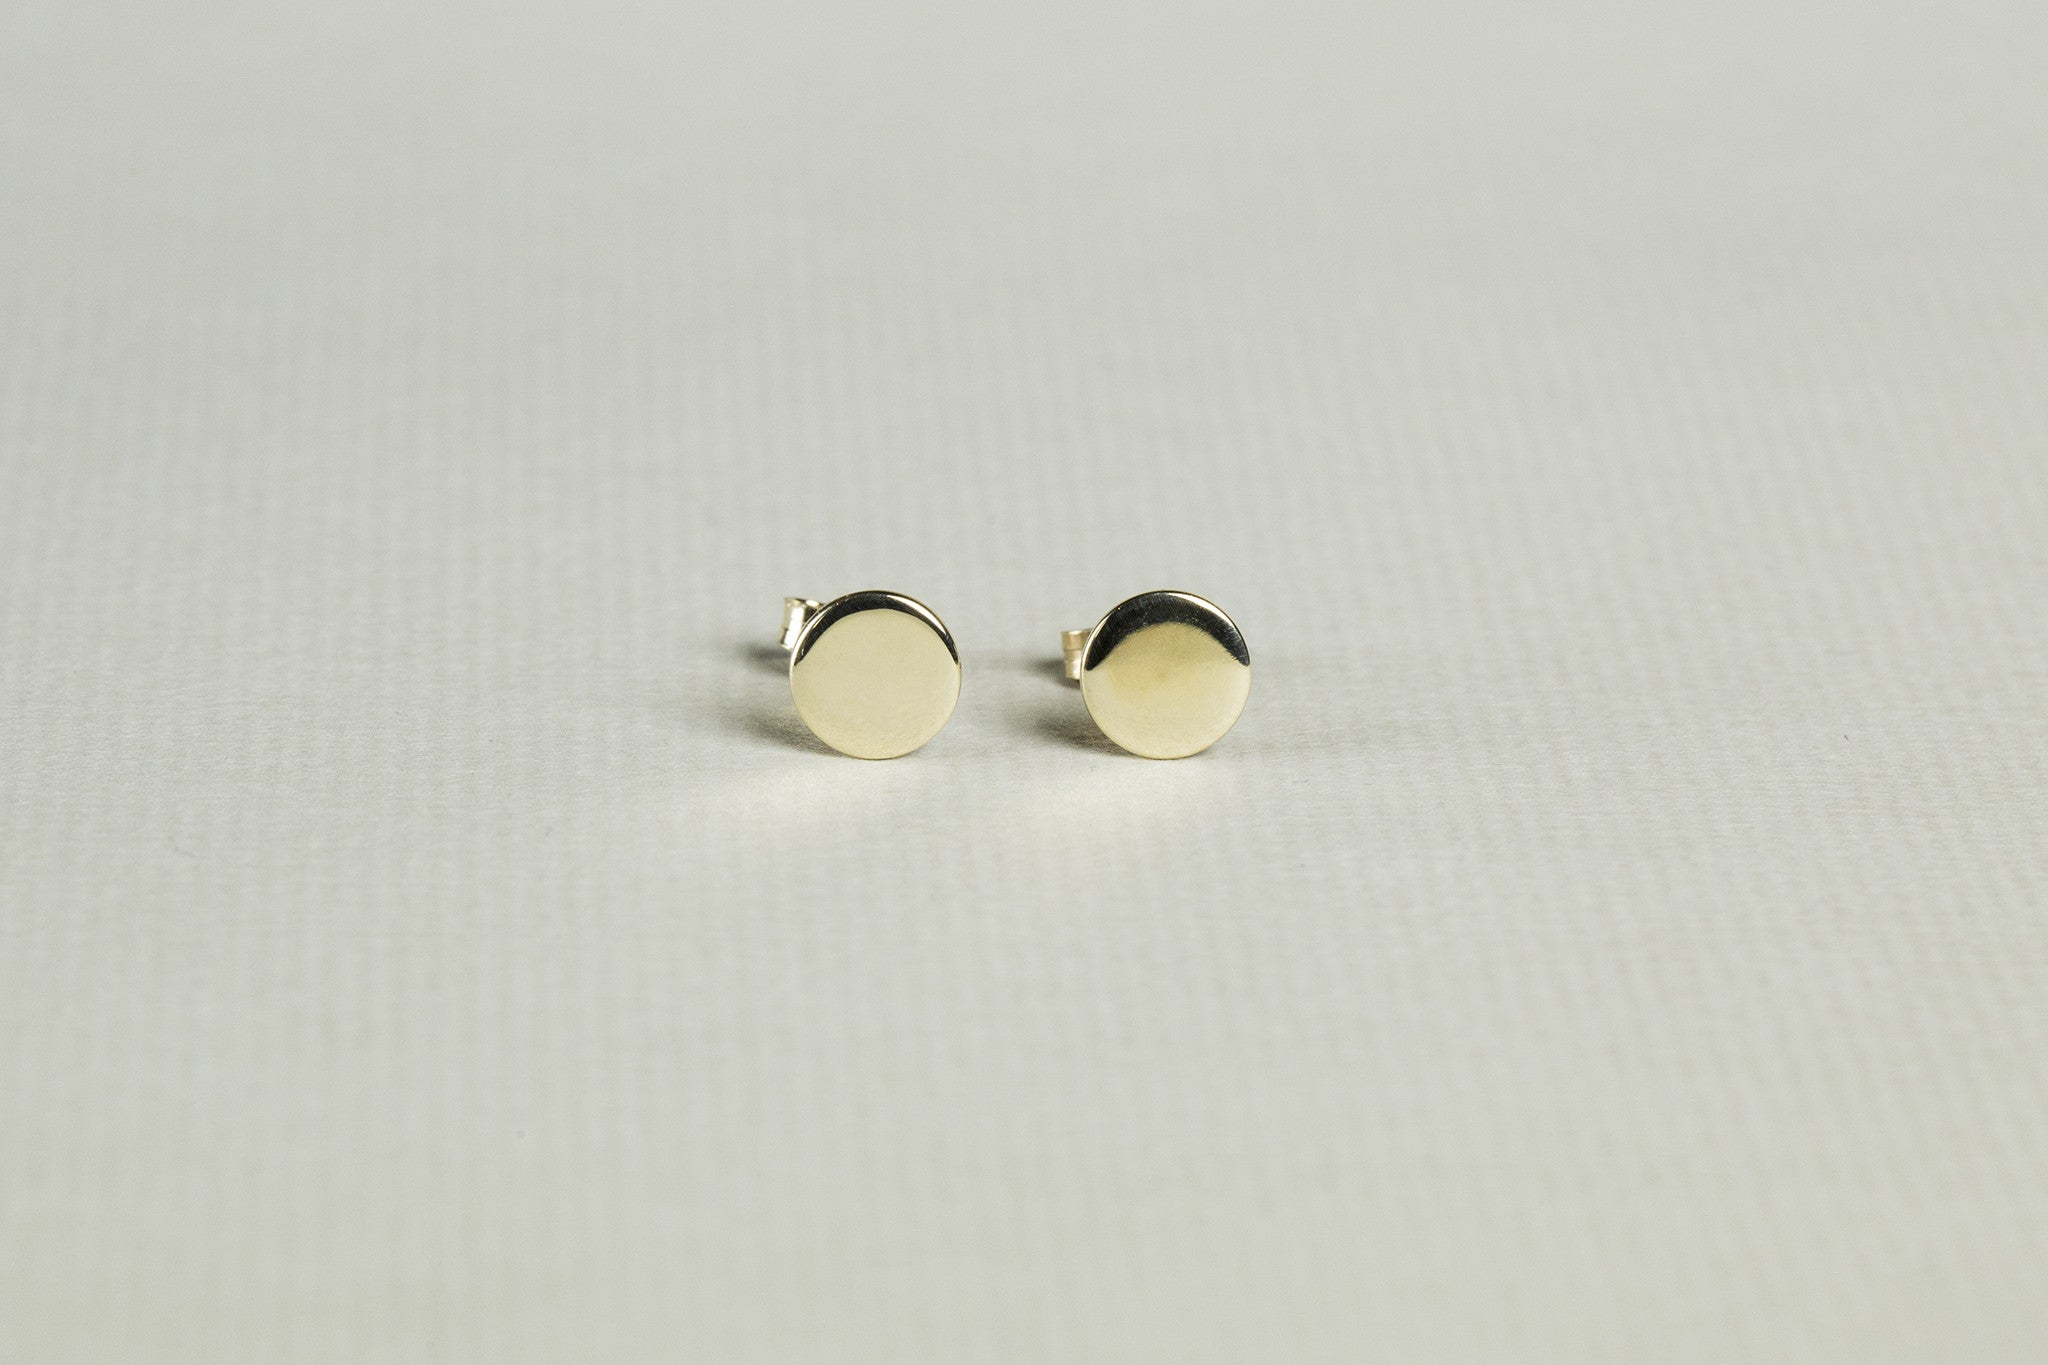 back hoop rounded our post a large earrings stud feature these hoops p tubular in favorite gold pin are